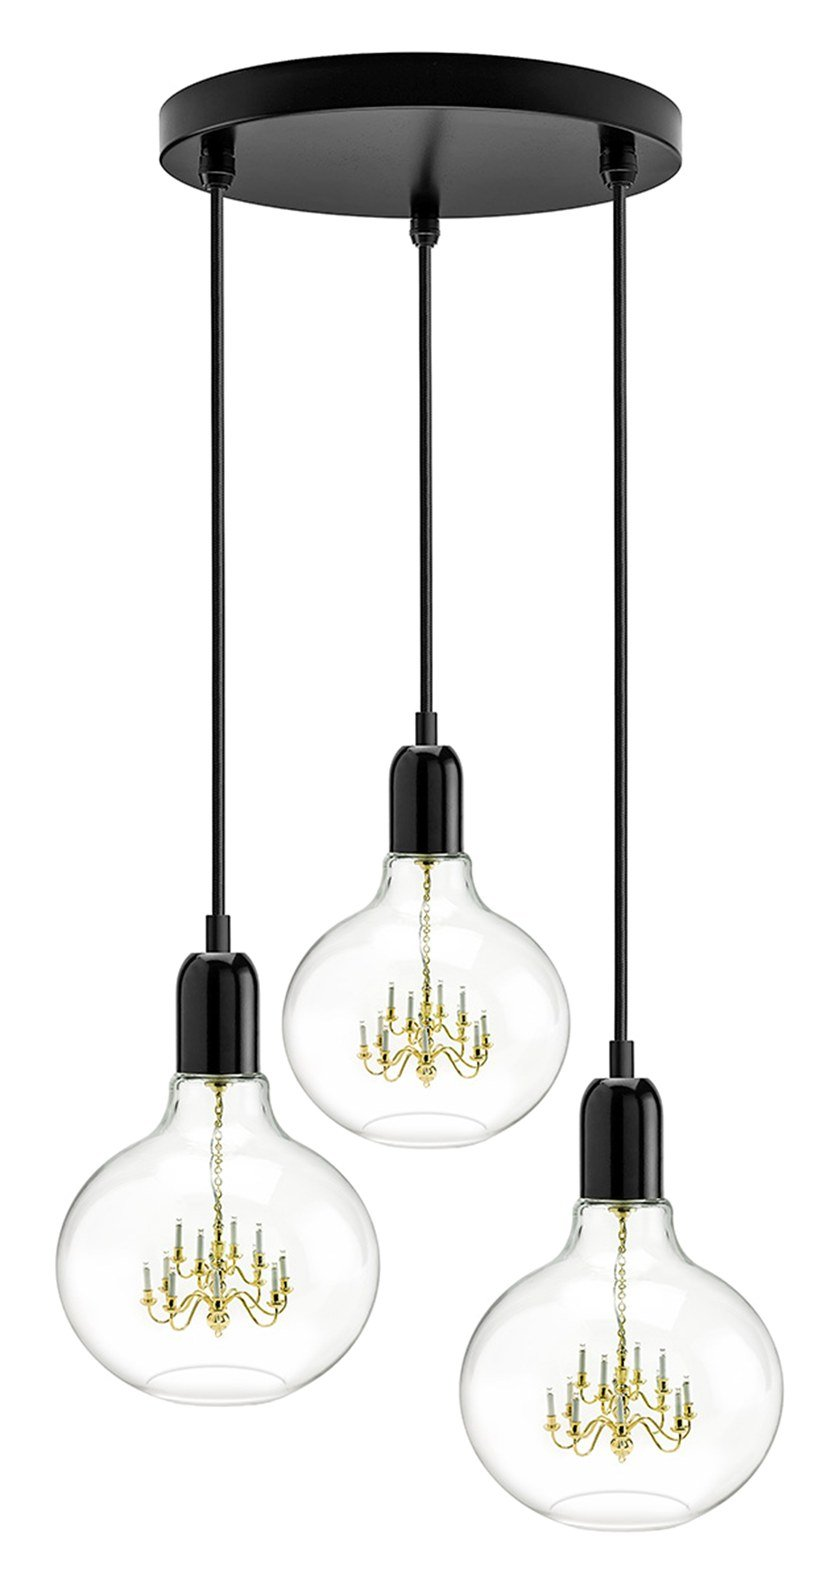 King edison trio pendant lamp by mineheart design young battaglia pendant lamp king edison trio pendant lamp by mineheart arubaitofo Images